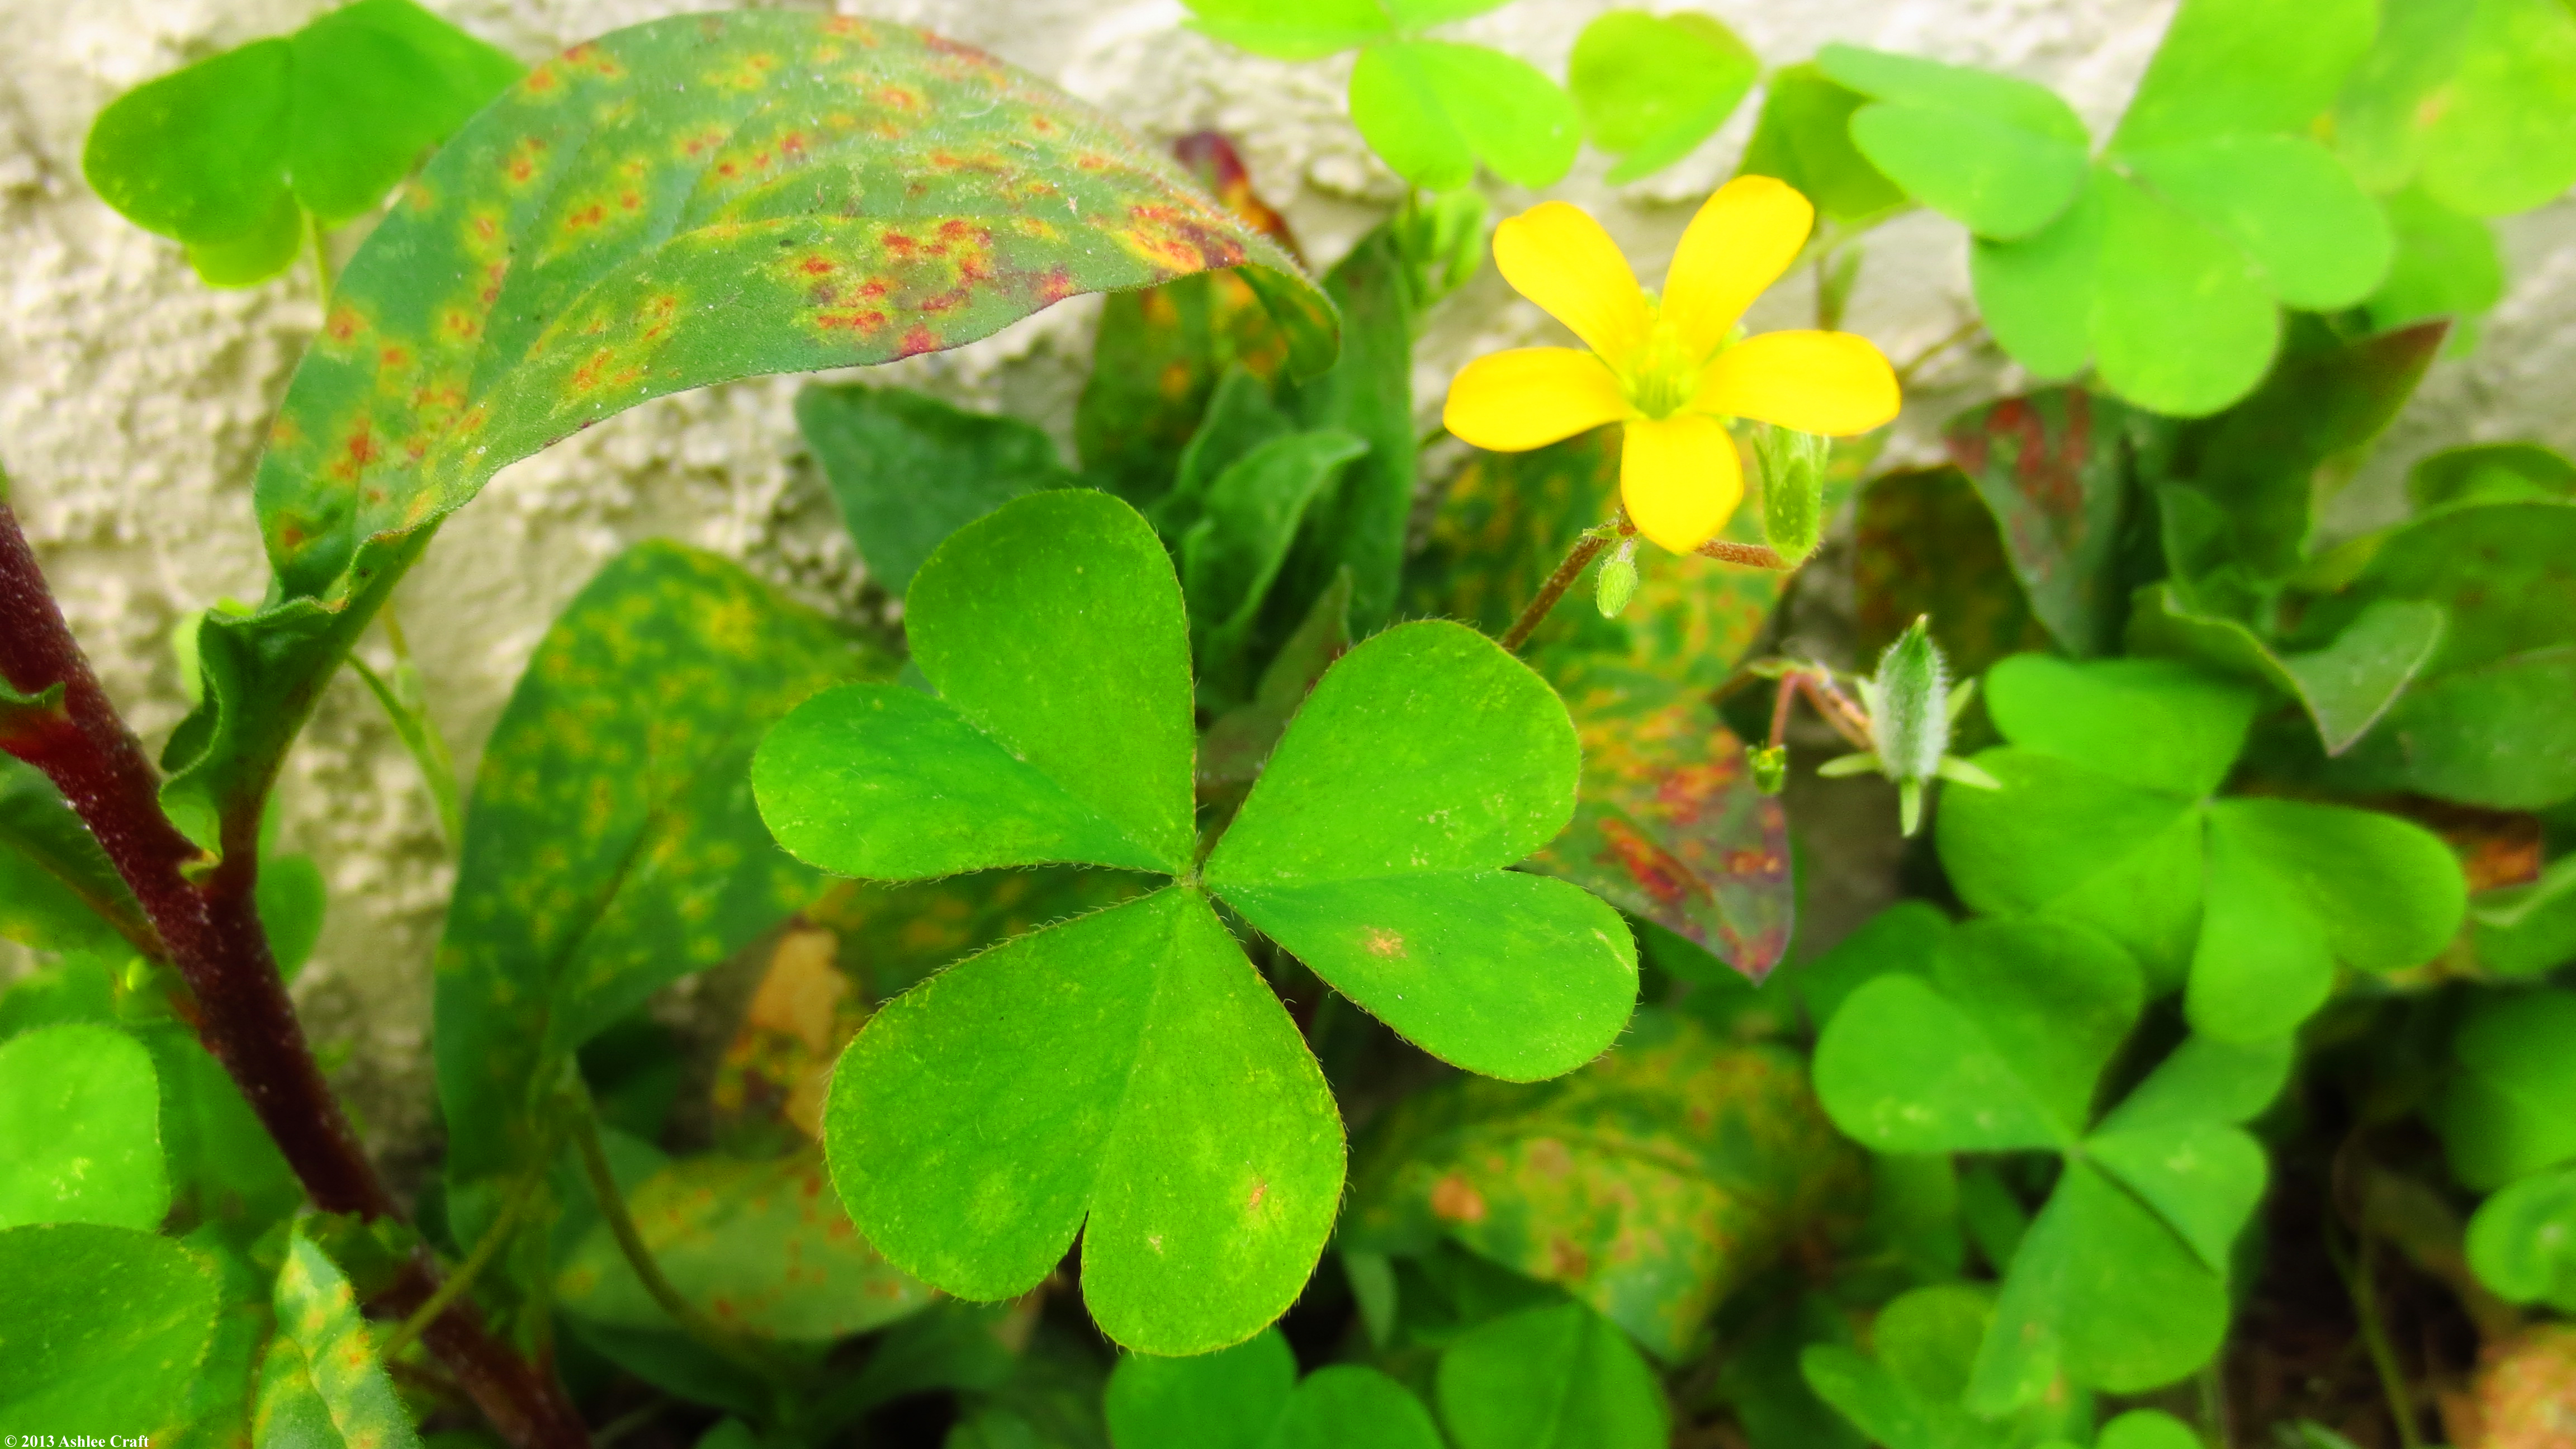 Clover with Yellow Flowers - MuchPics